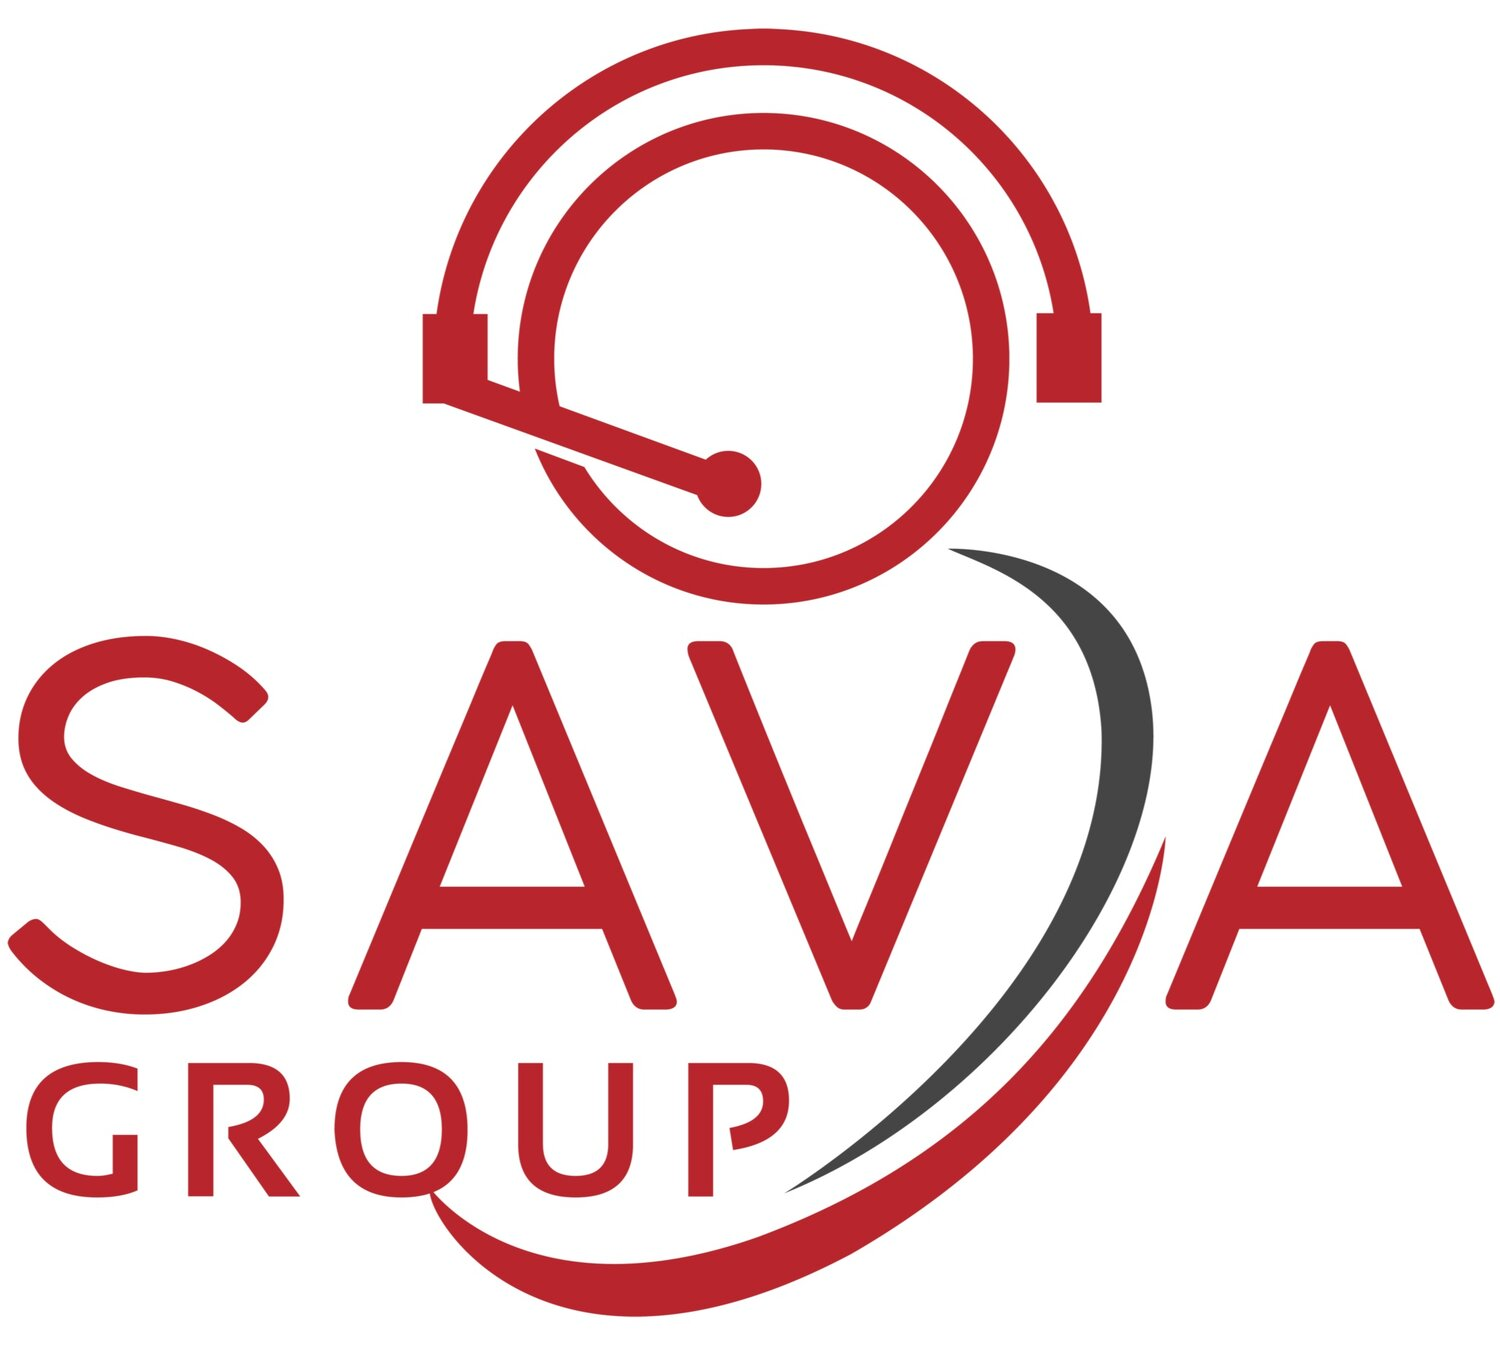 THE SAVA GROUP